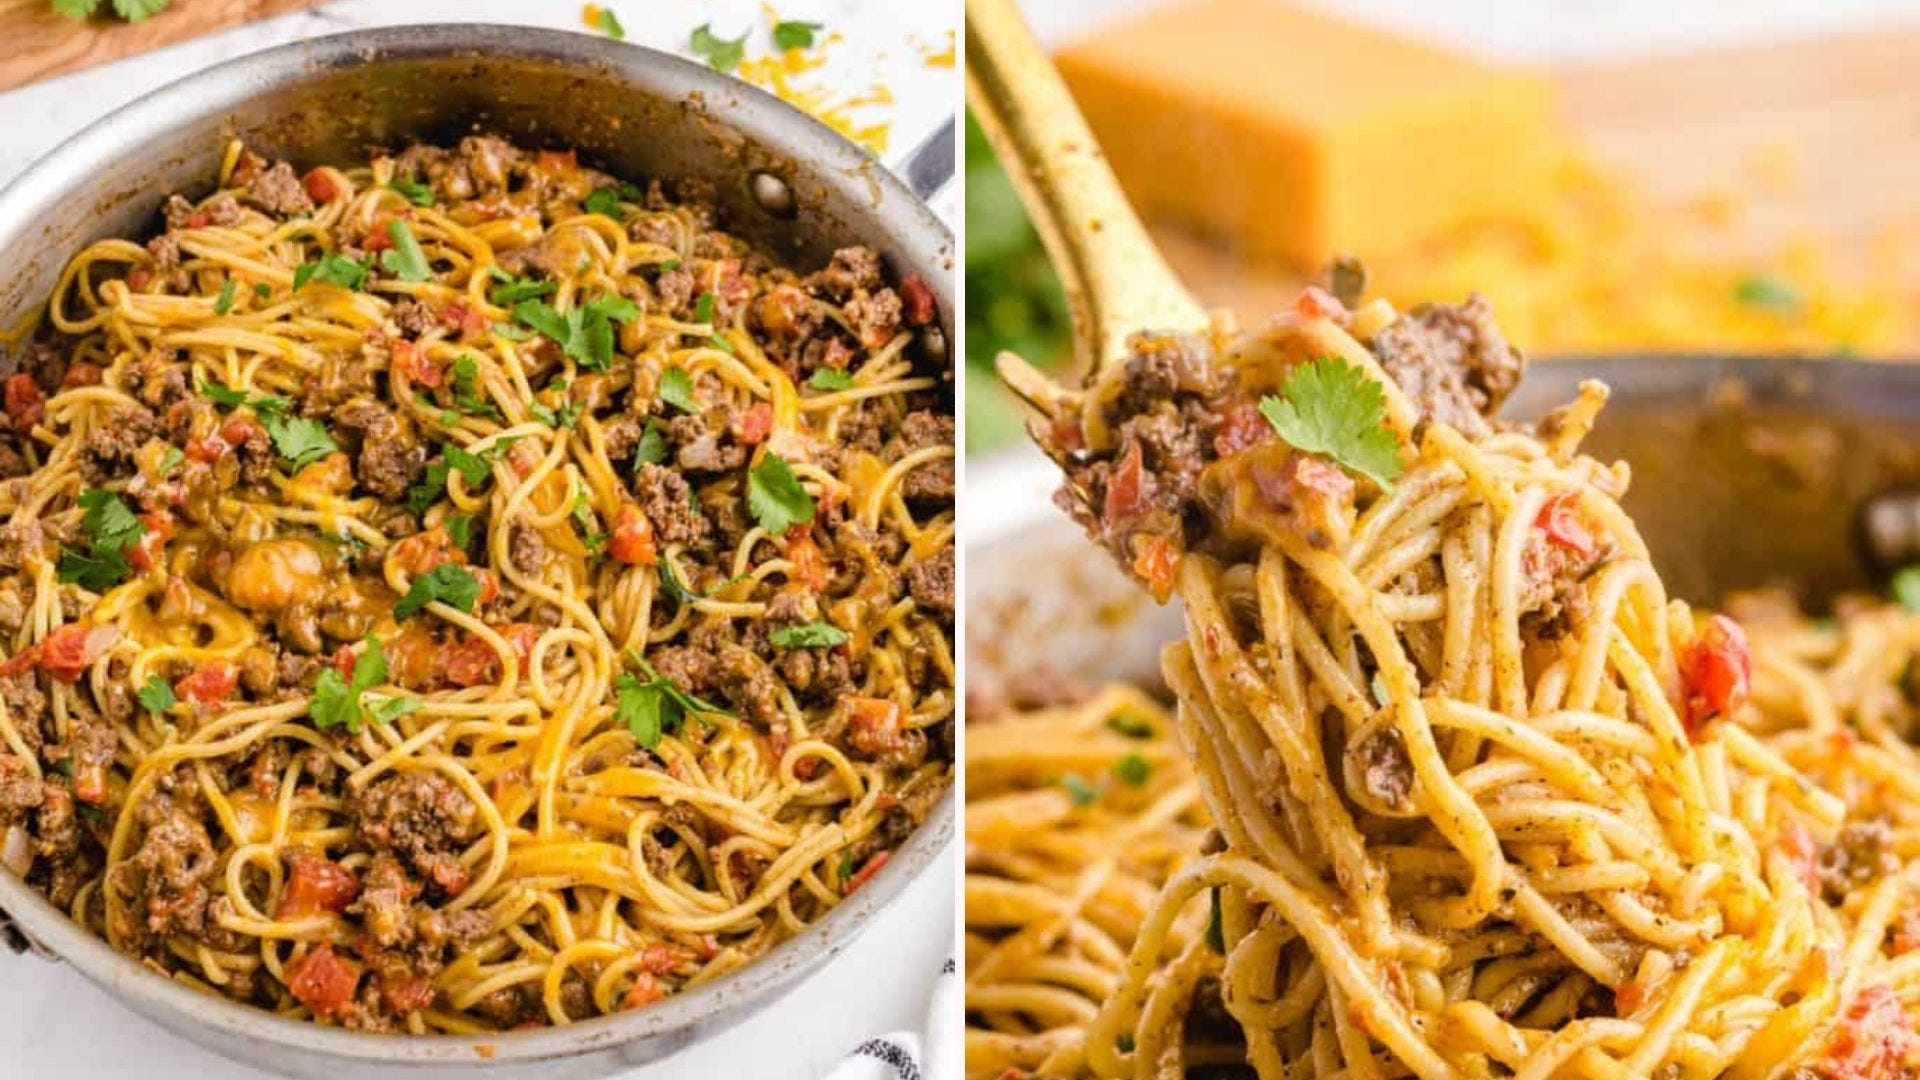 Two images of taco spaghetti. The left image is of a skillet filled with taco spaghetti and the right image is of a fork pulling up a large amount ready to eat.